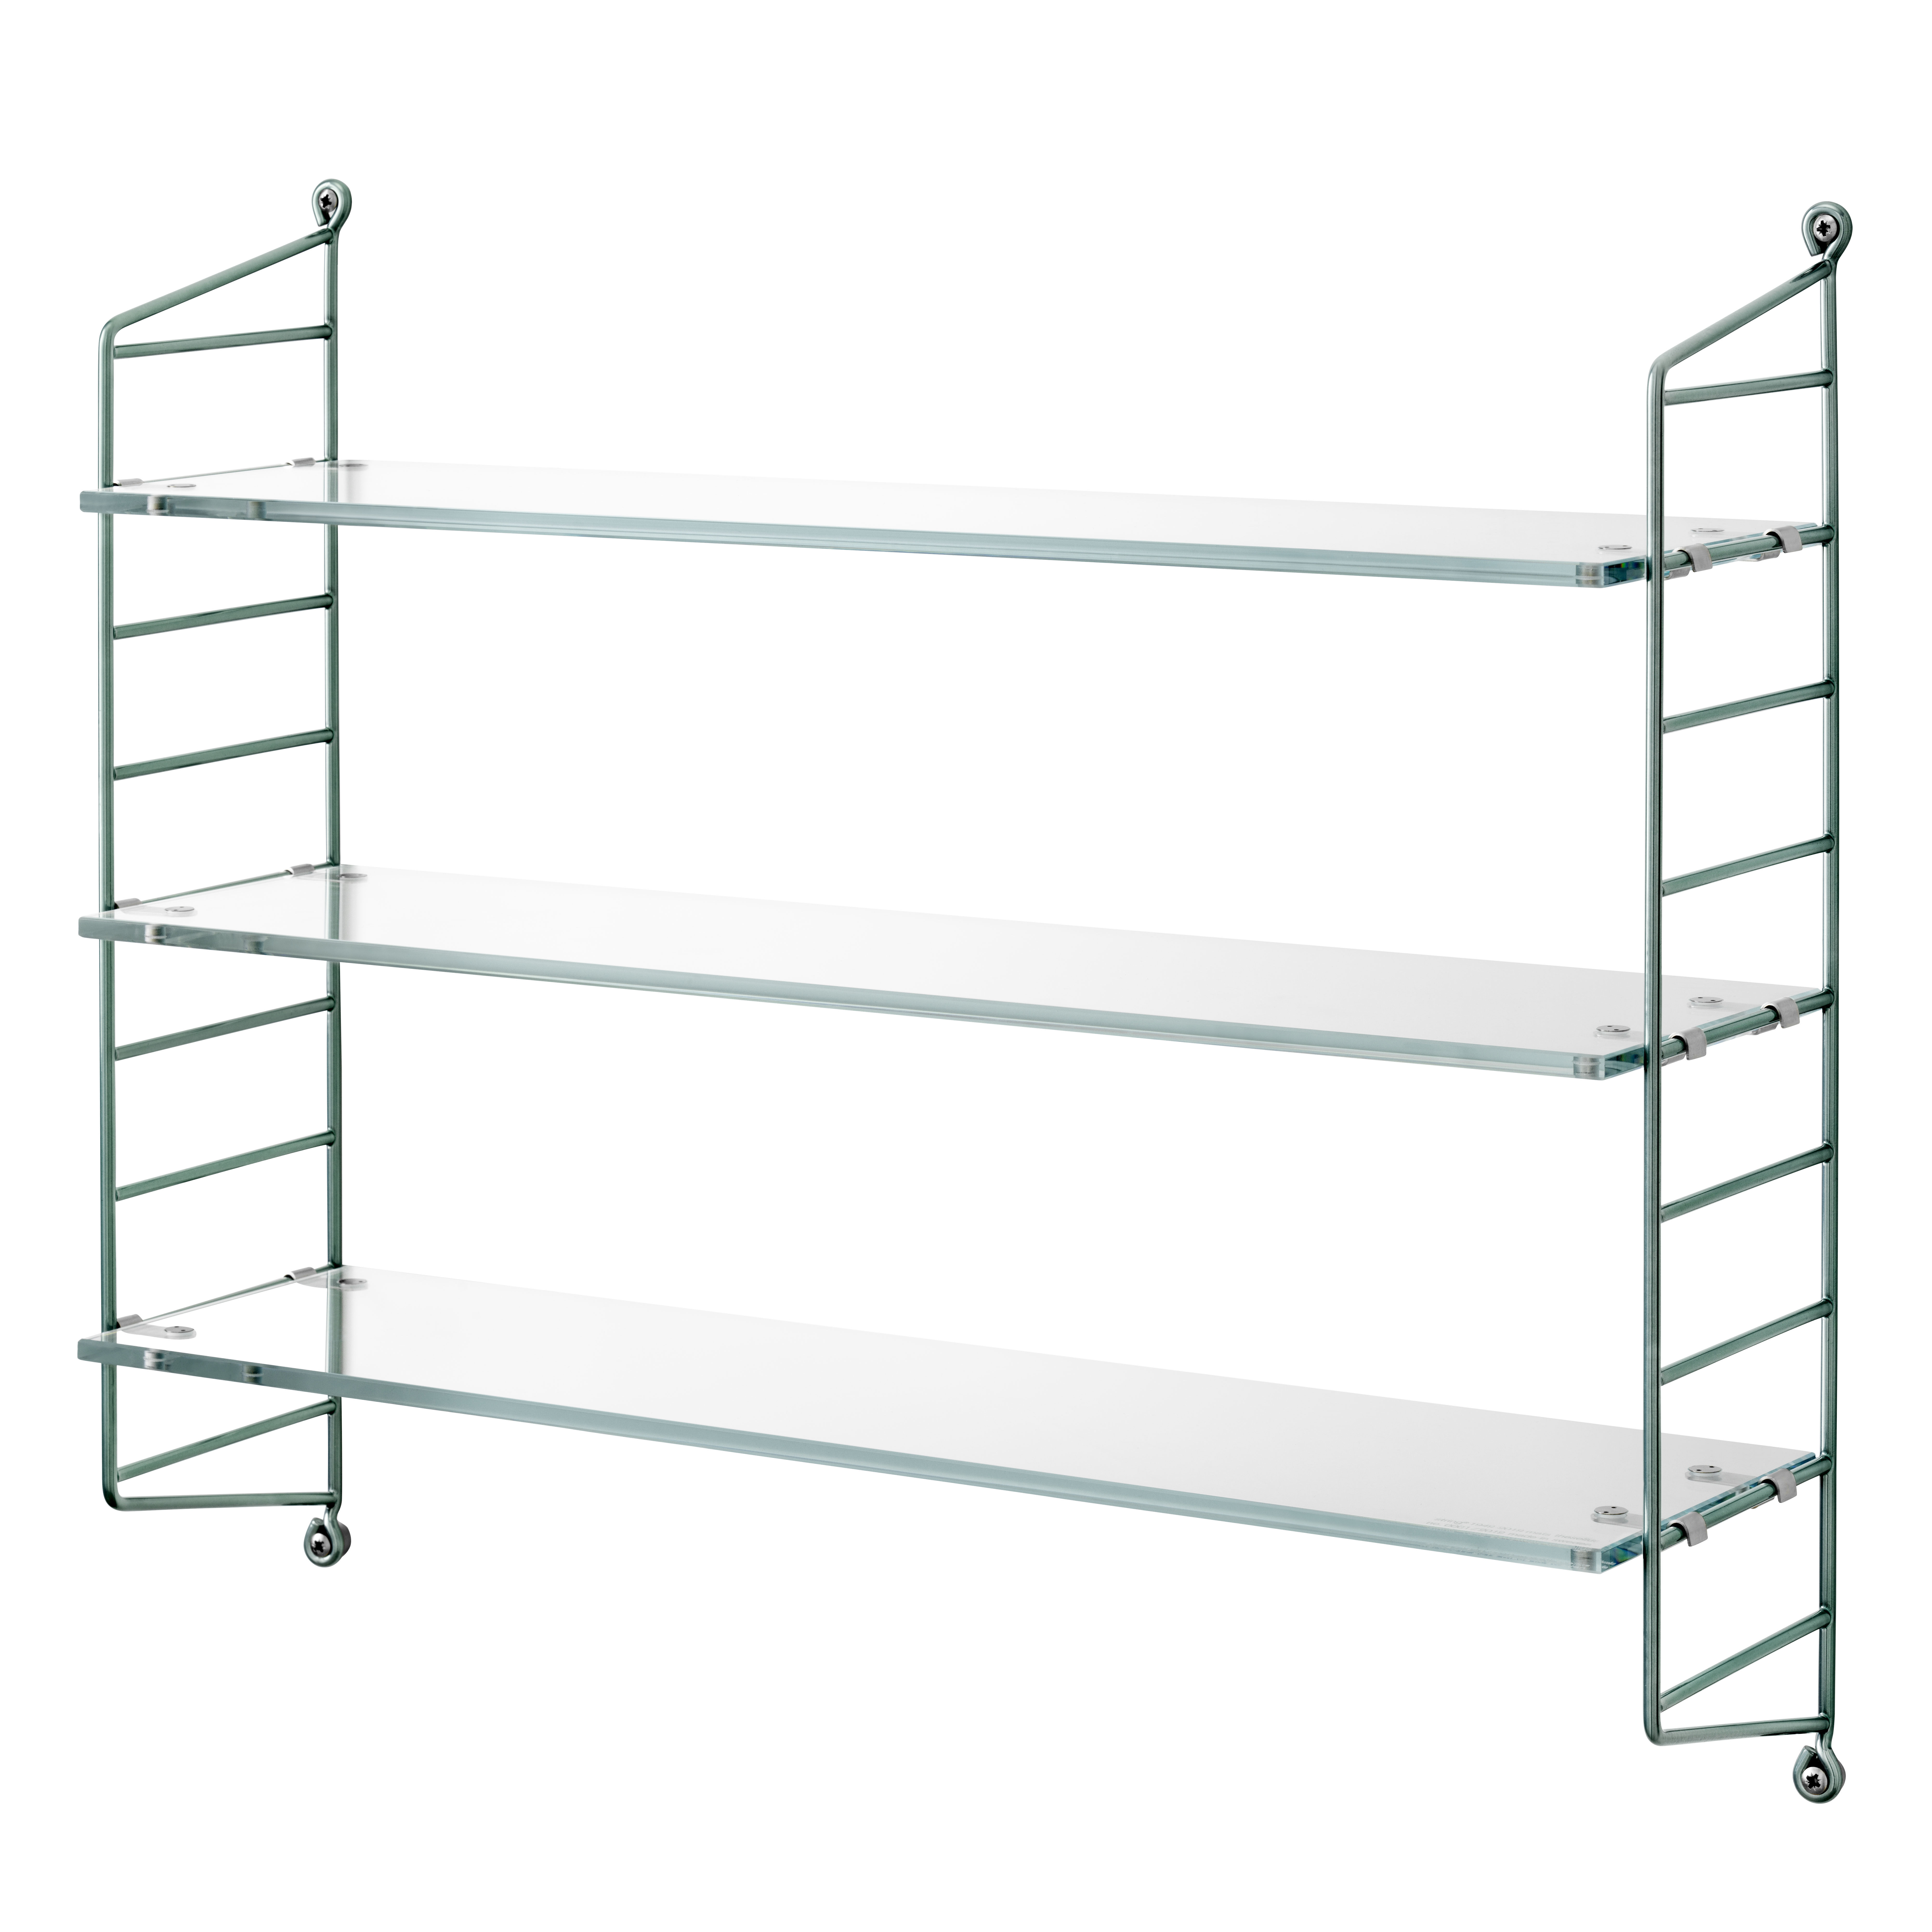 Furniture - Bookcases & Bookshelves - String Pocket Shelf - / Glass - Numbered, limited edition 70 years - L 60 x H 50 cm by String Furniture - Transparent / Natural steel - Glass, Stainless steel